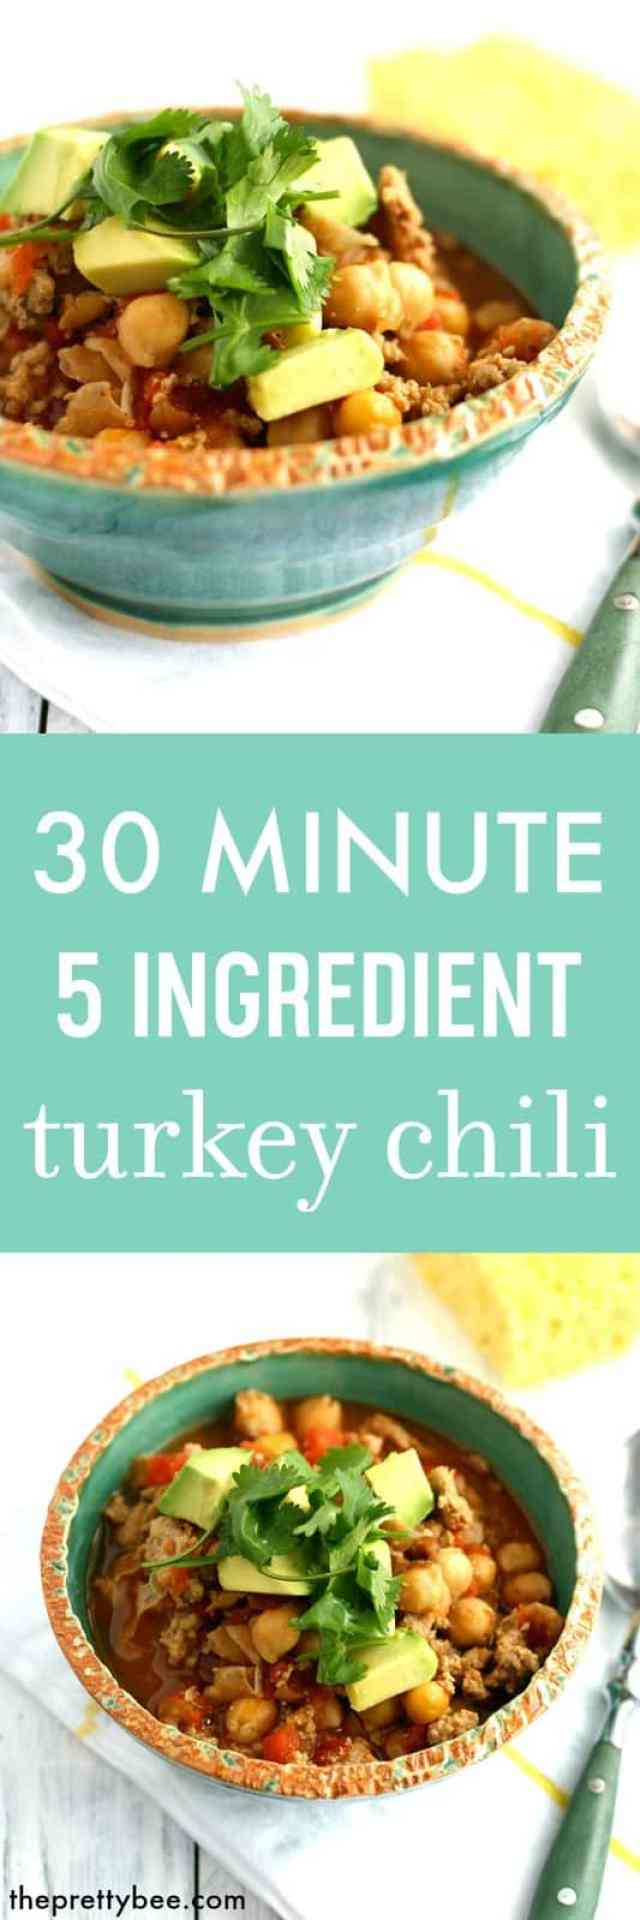 EASY turkey chili - just 5 ingredients and 30 minutes to make this family meal!